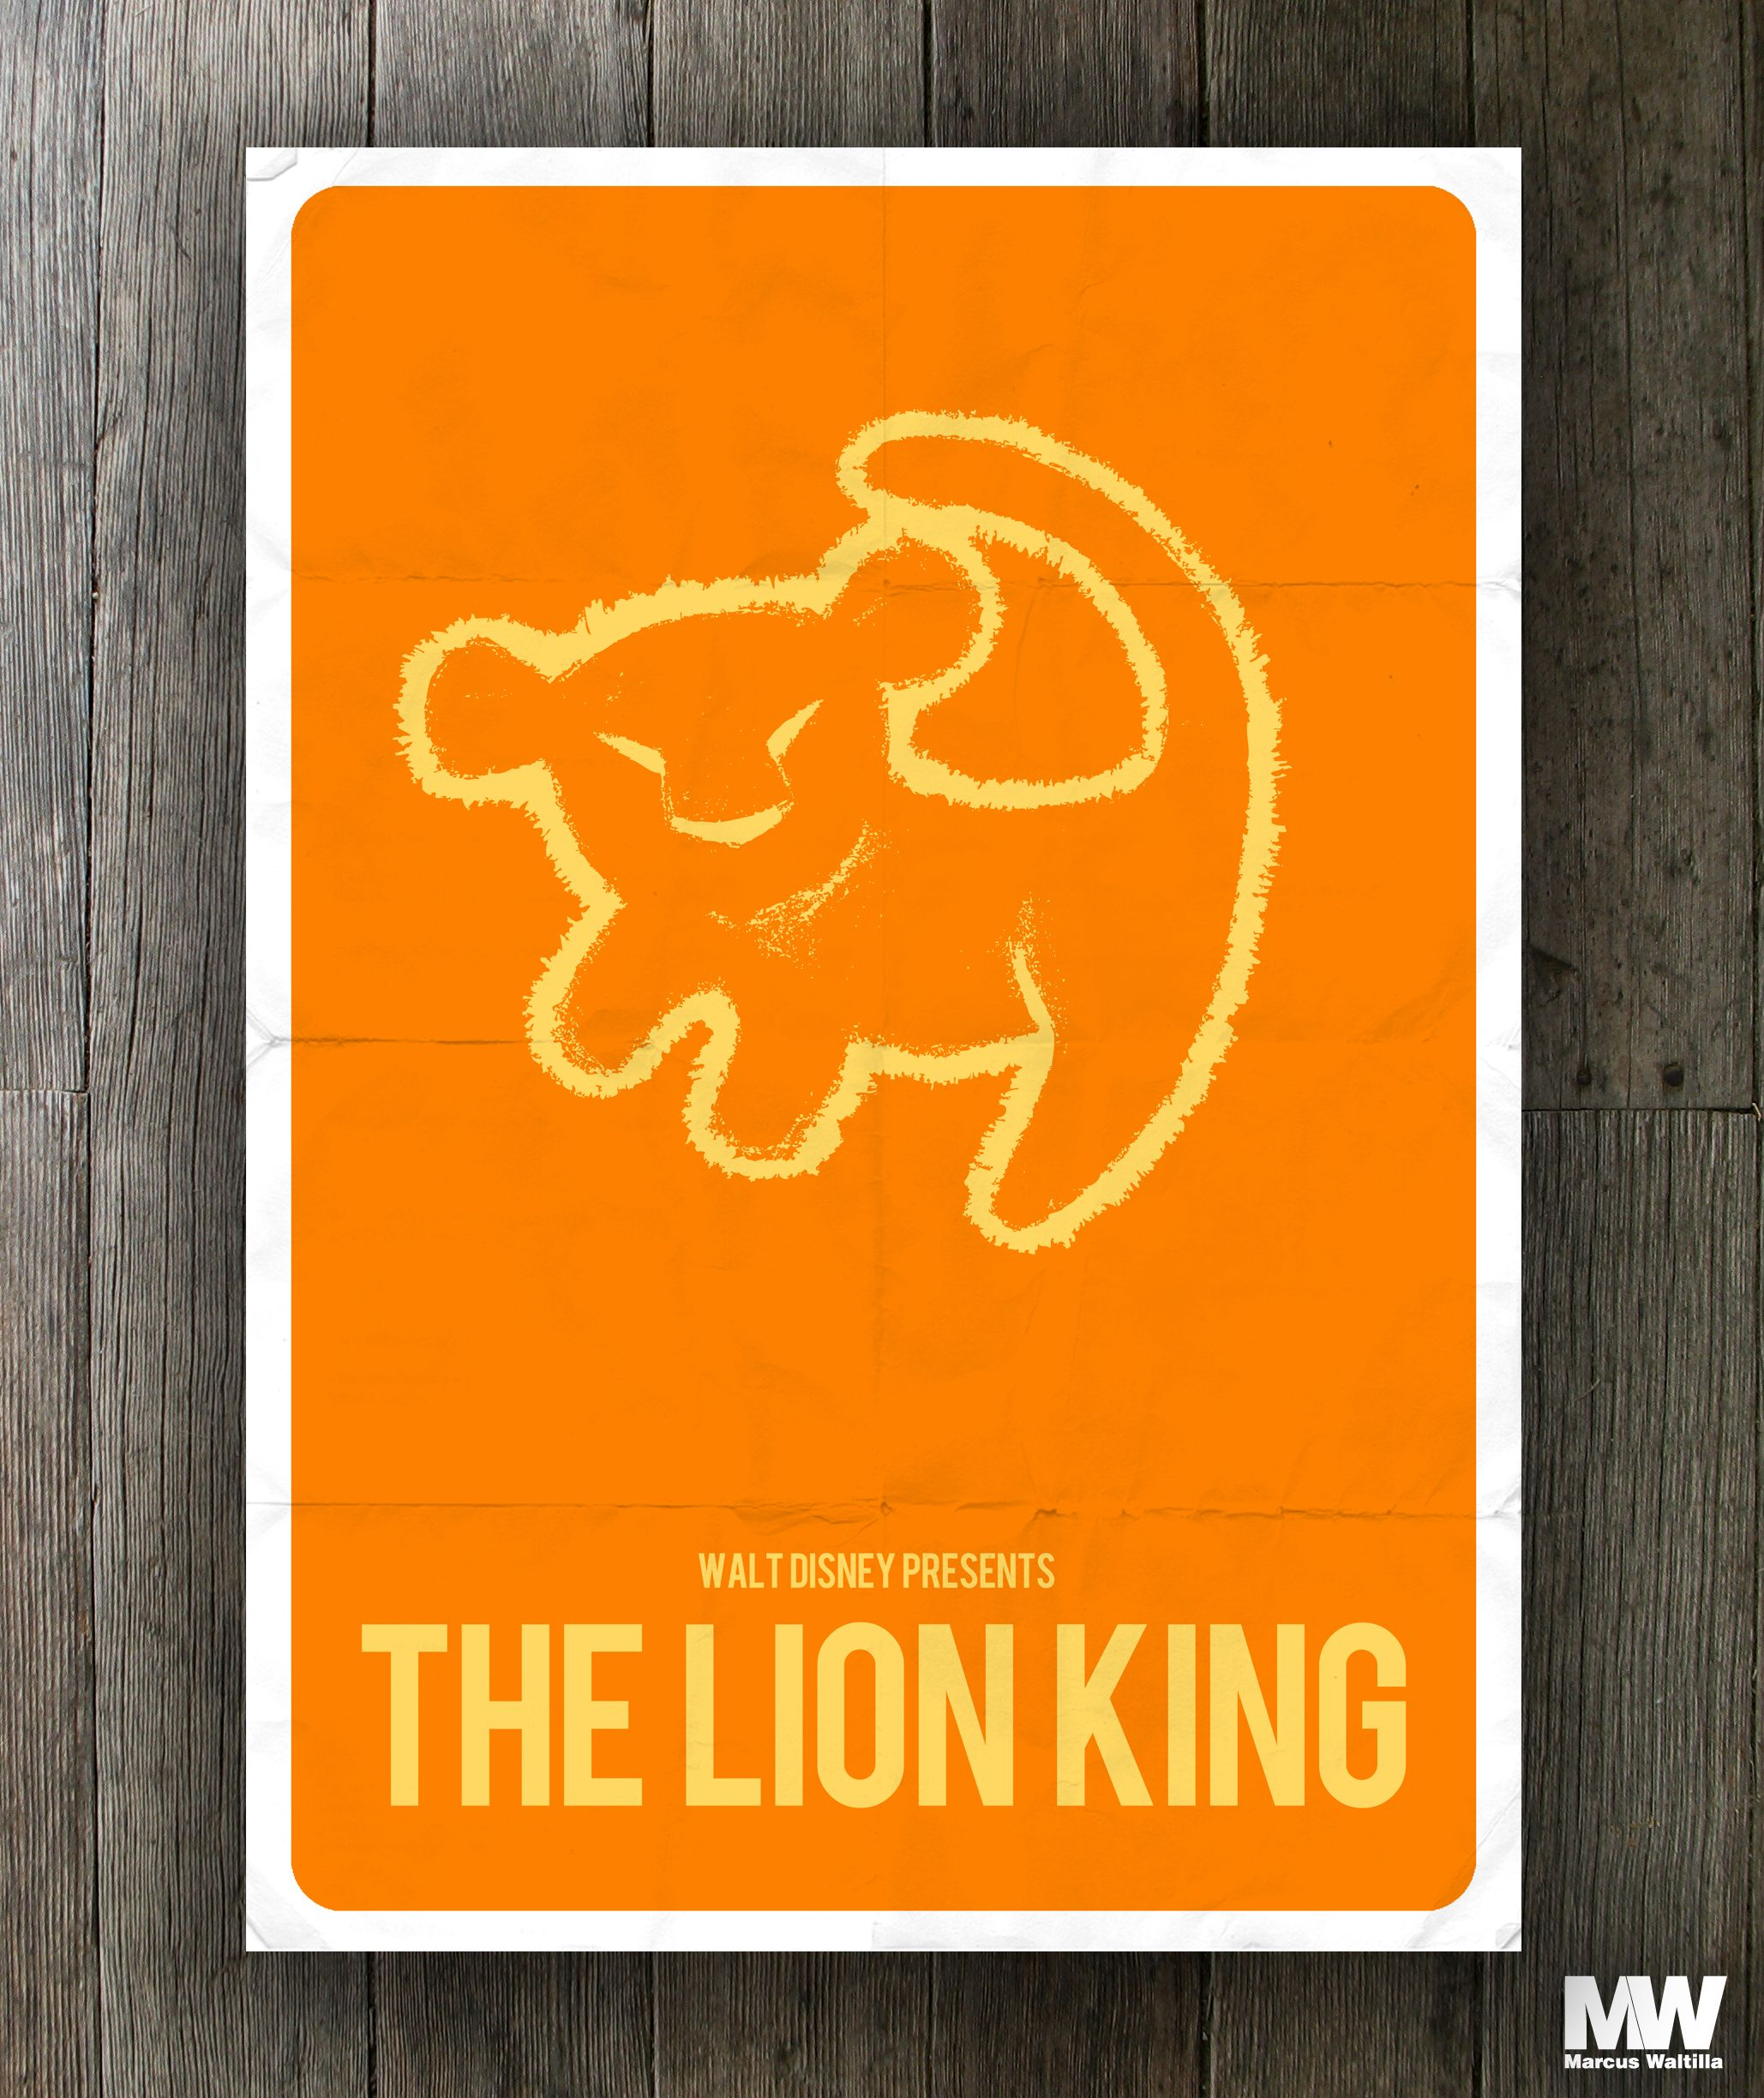 the lion king  minimalistic poster art  disney  design  movie  poster